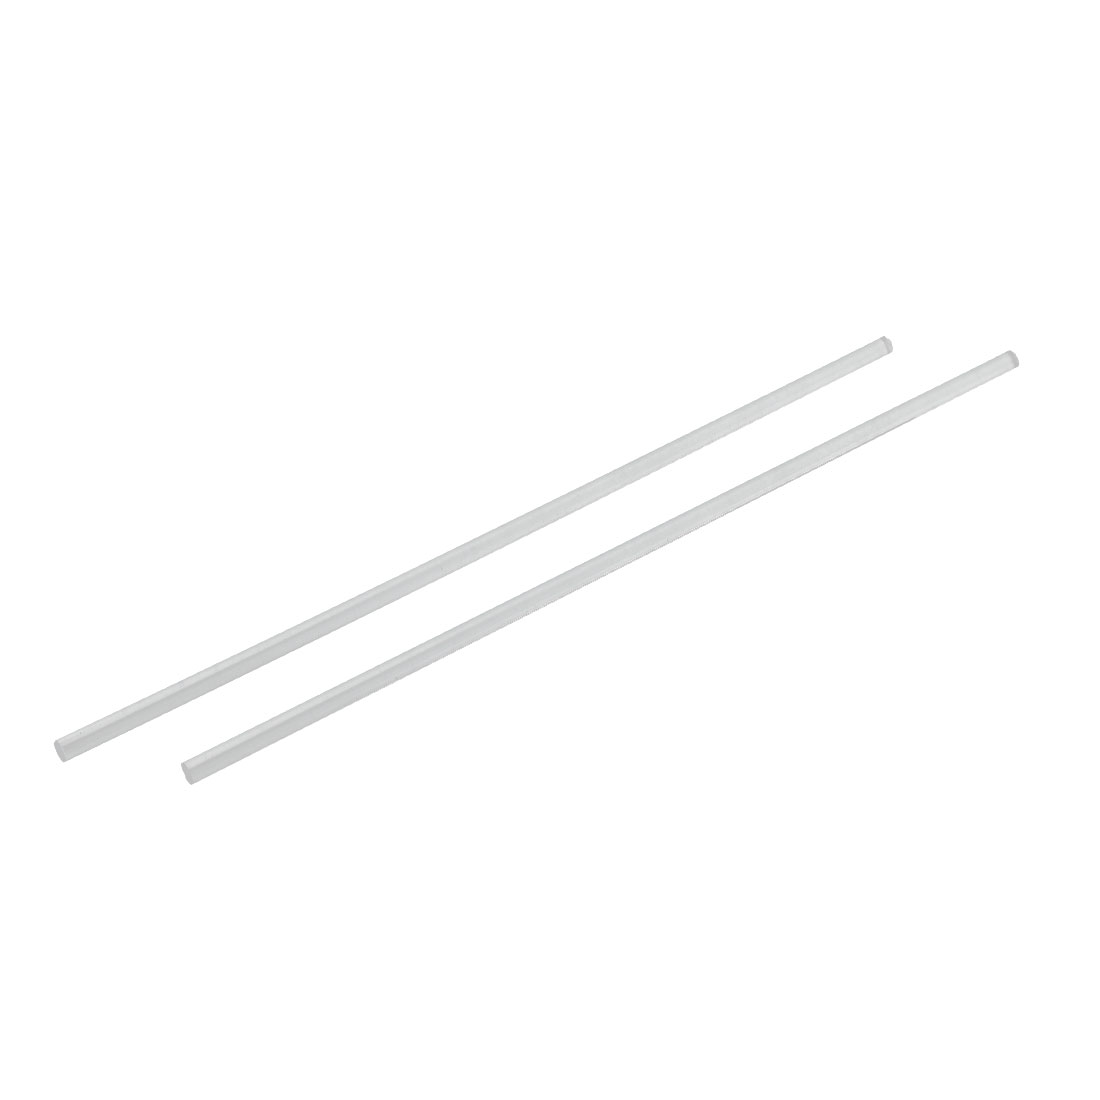 Solid Acrylic Round Rod PMMA Bar Clear 6mm Dia 10 Inch Long 2pcs